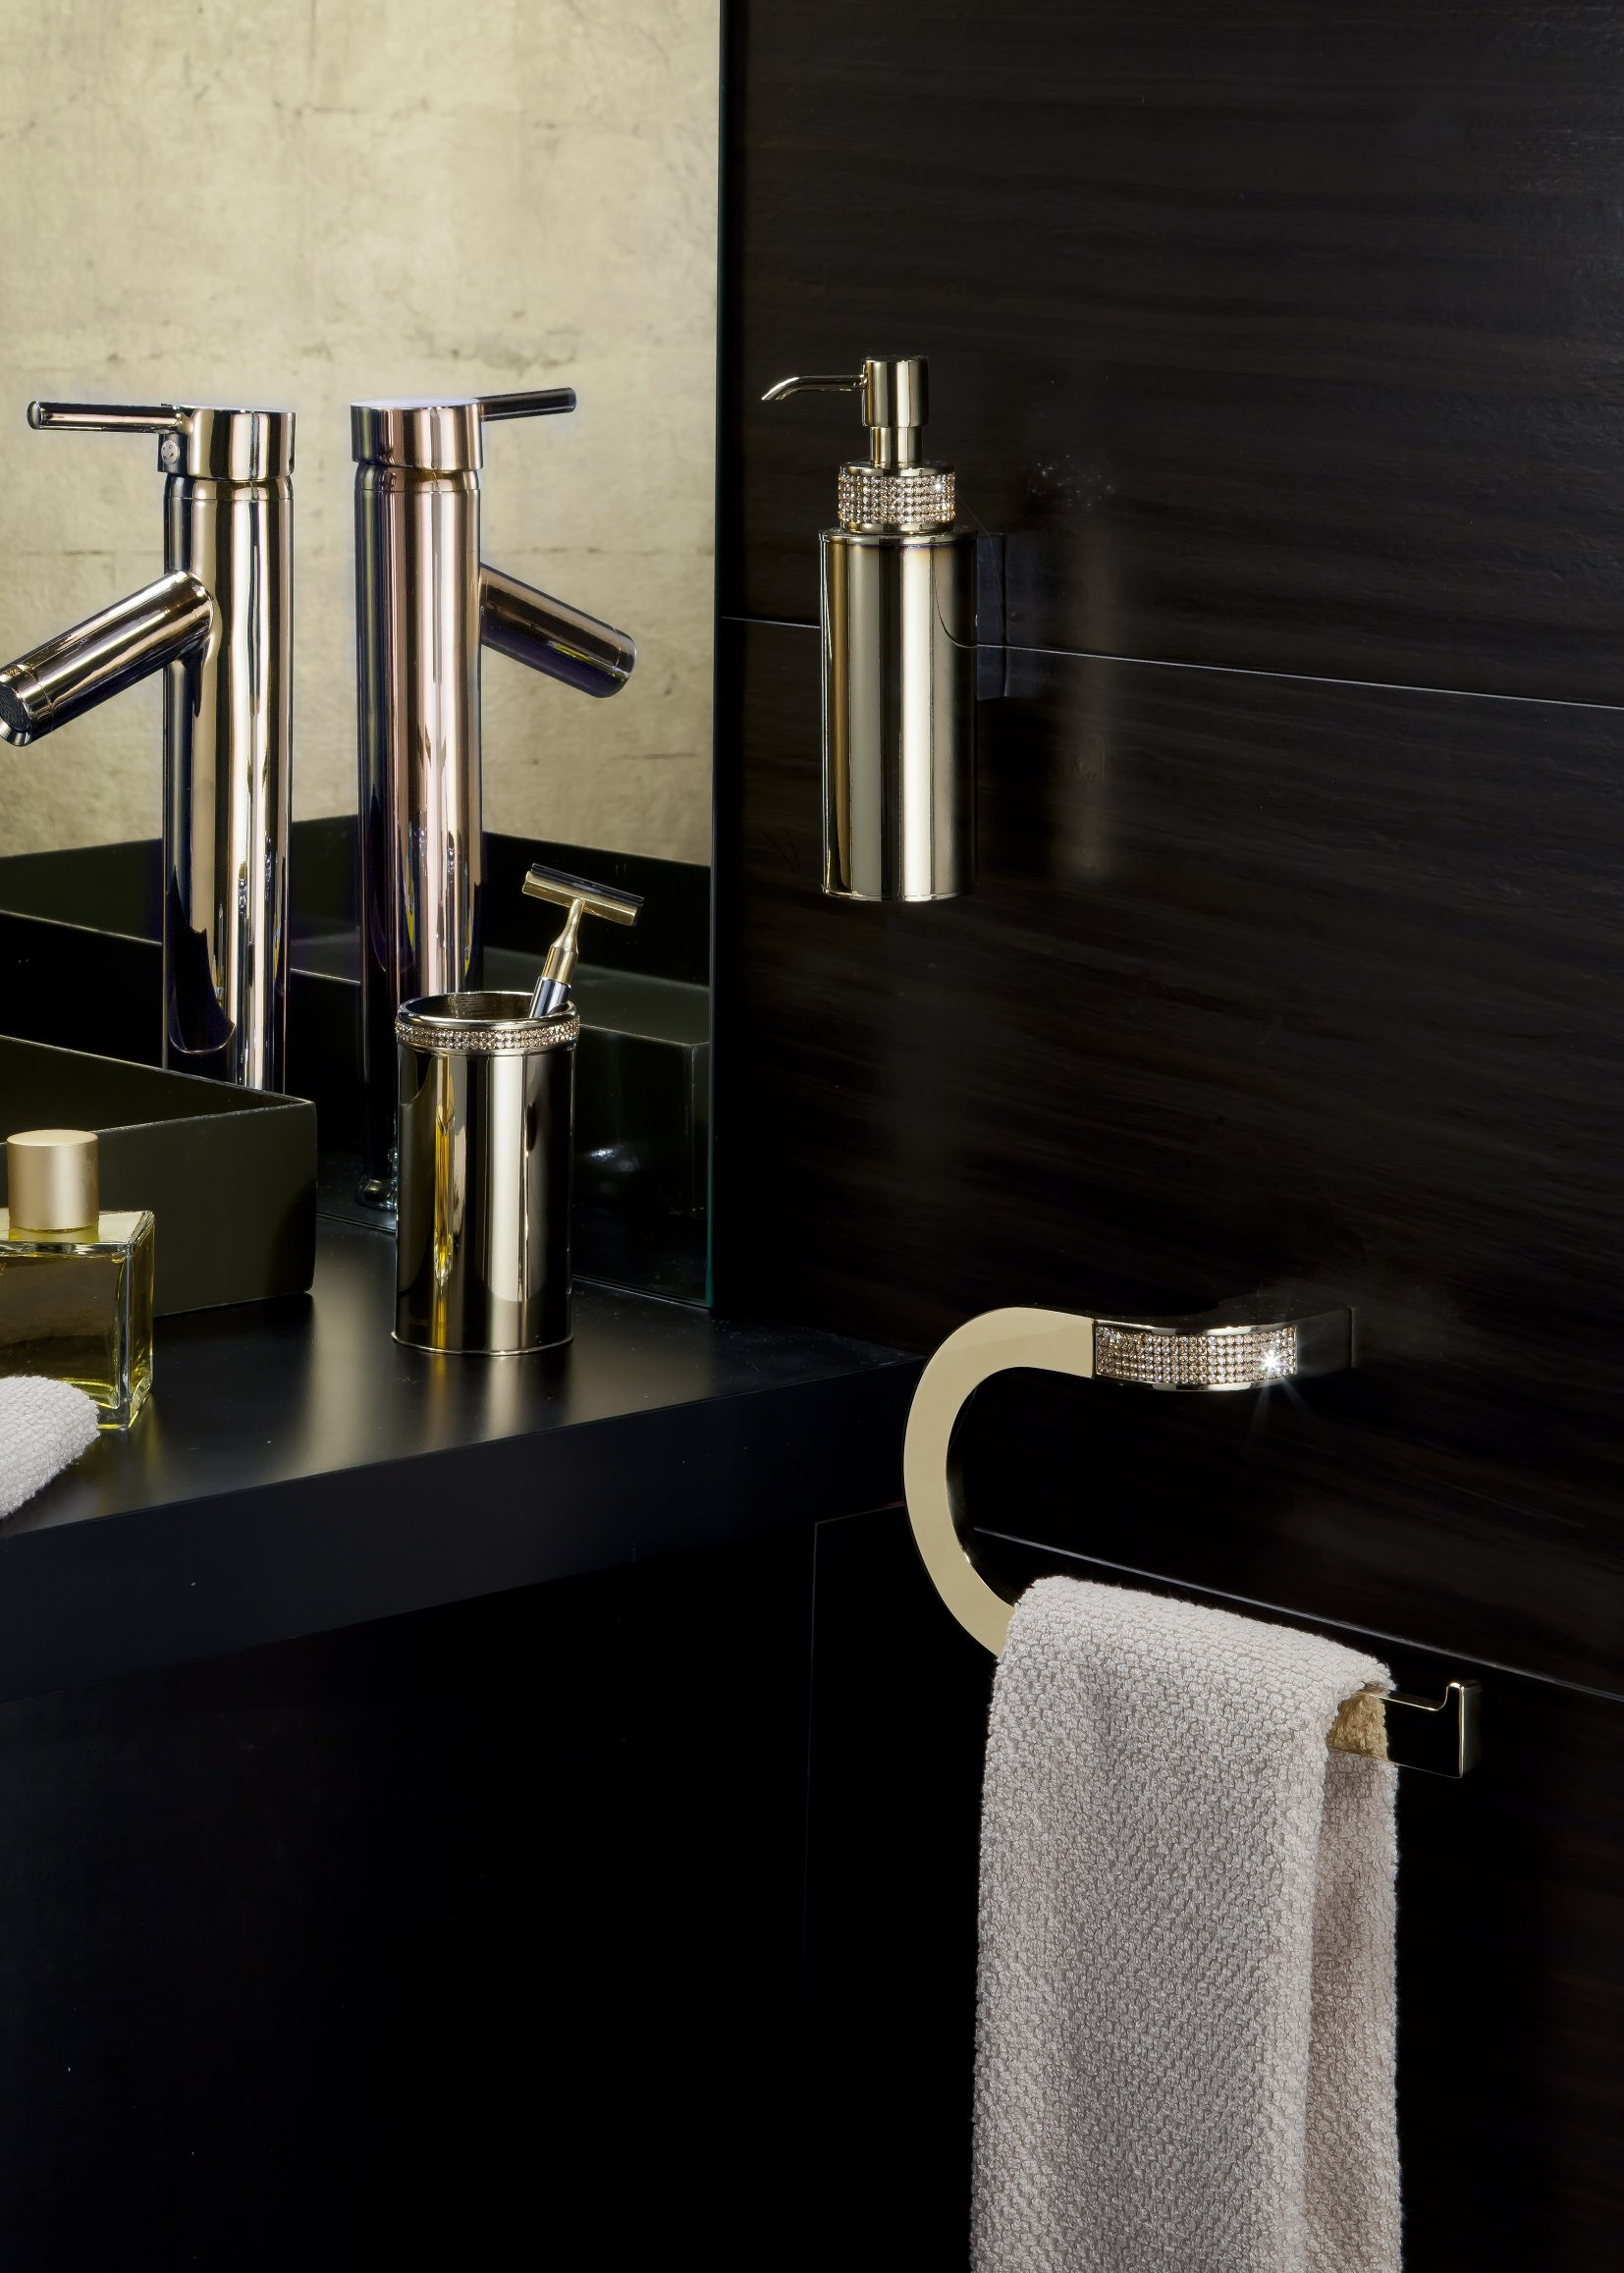 Cecilia Luxury Gold Swarovski Crystals Small Towel Ring, Limited Edition by Secret Bath (Image #2)